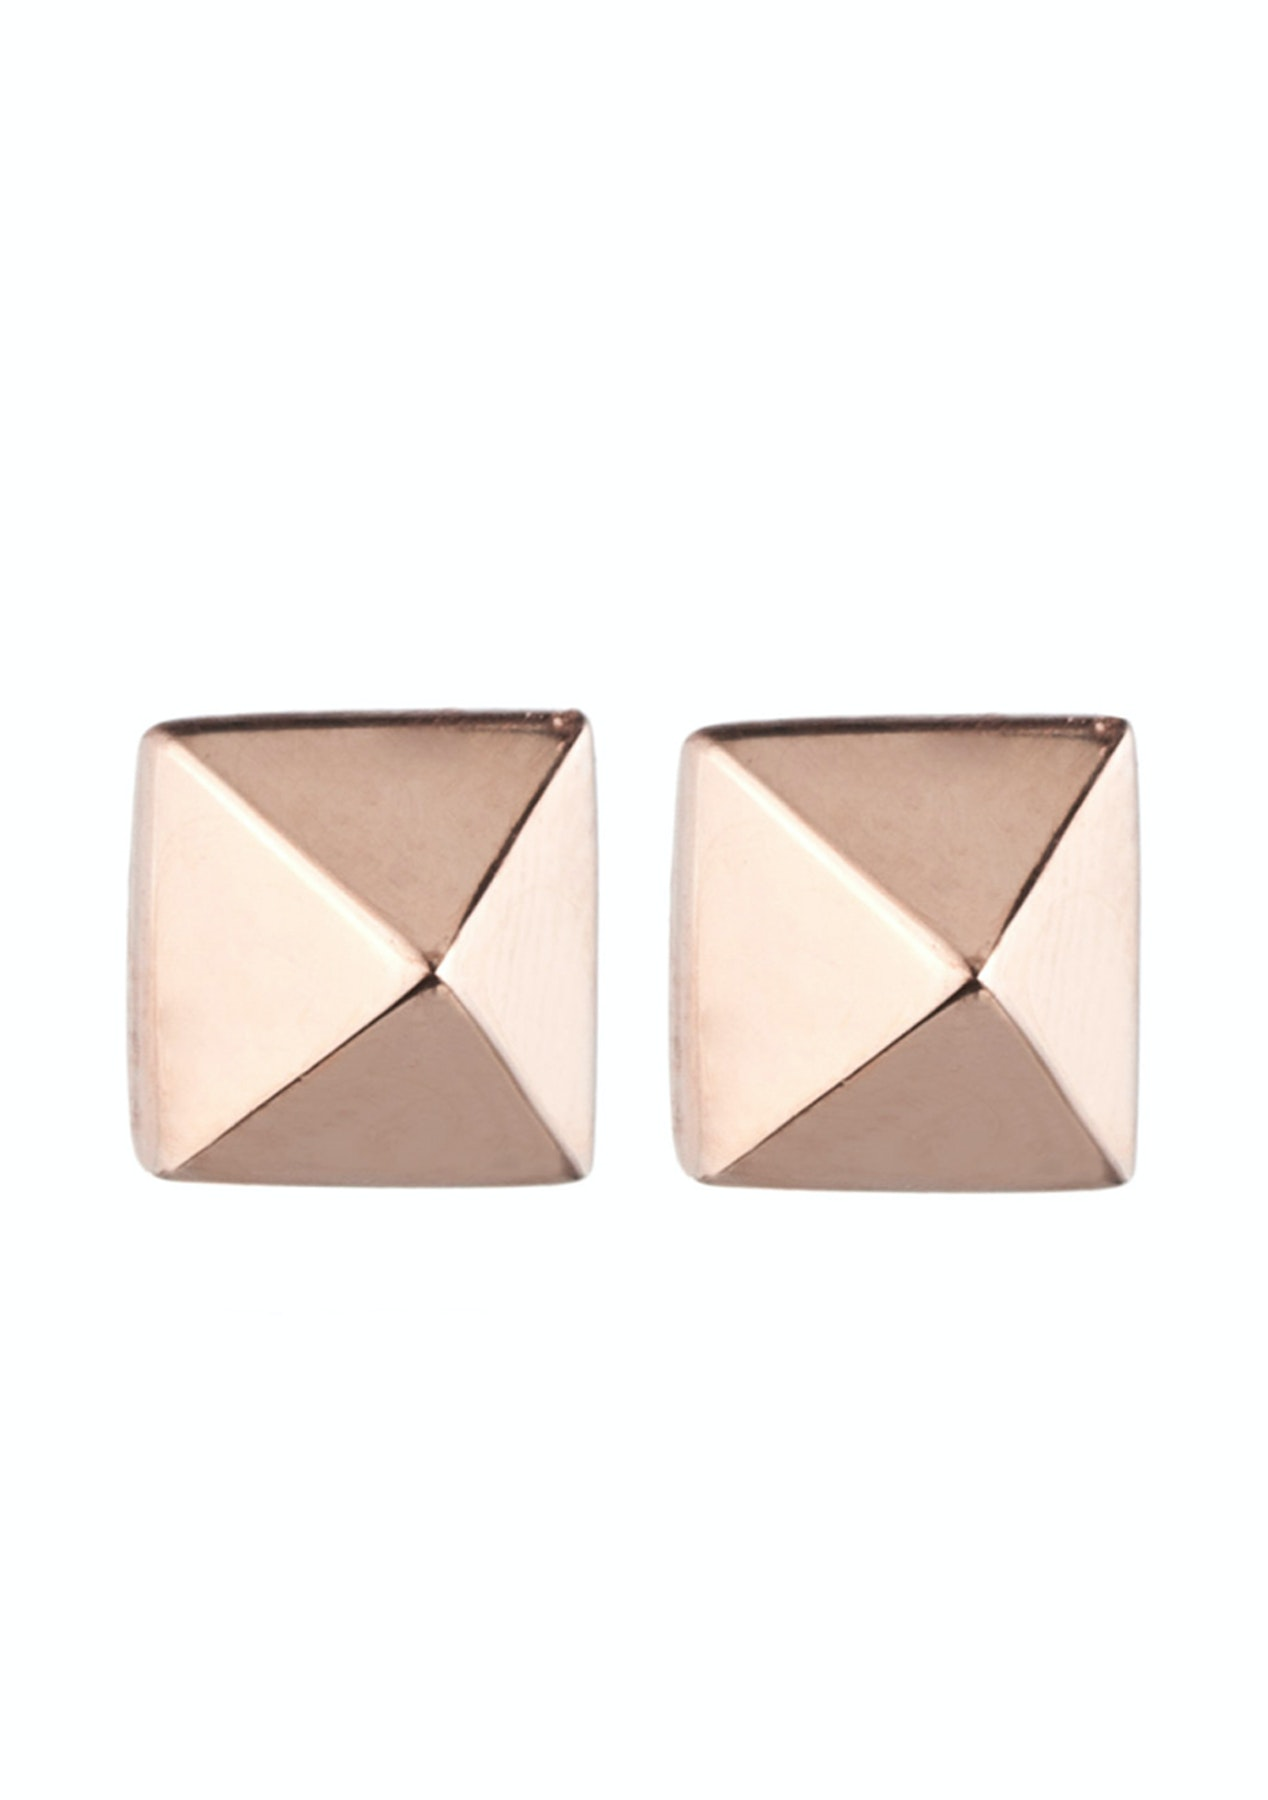 d8afc1b97f2 Eddie Borgo - Pyramid Stud Earrings - Rose Gold - Free Shipping Jewellery &  Sunglasses - Onceit